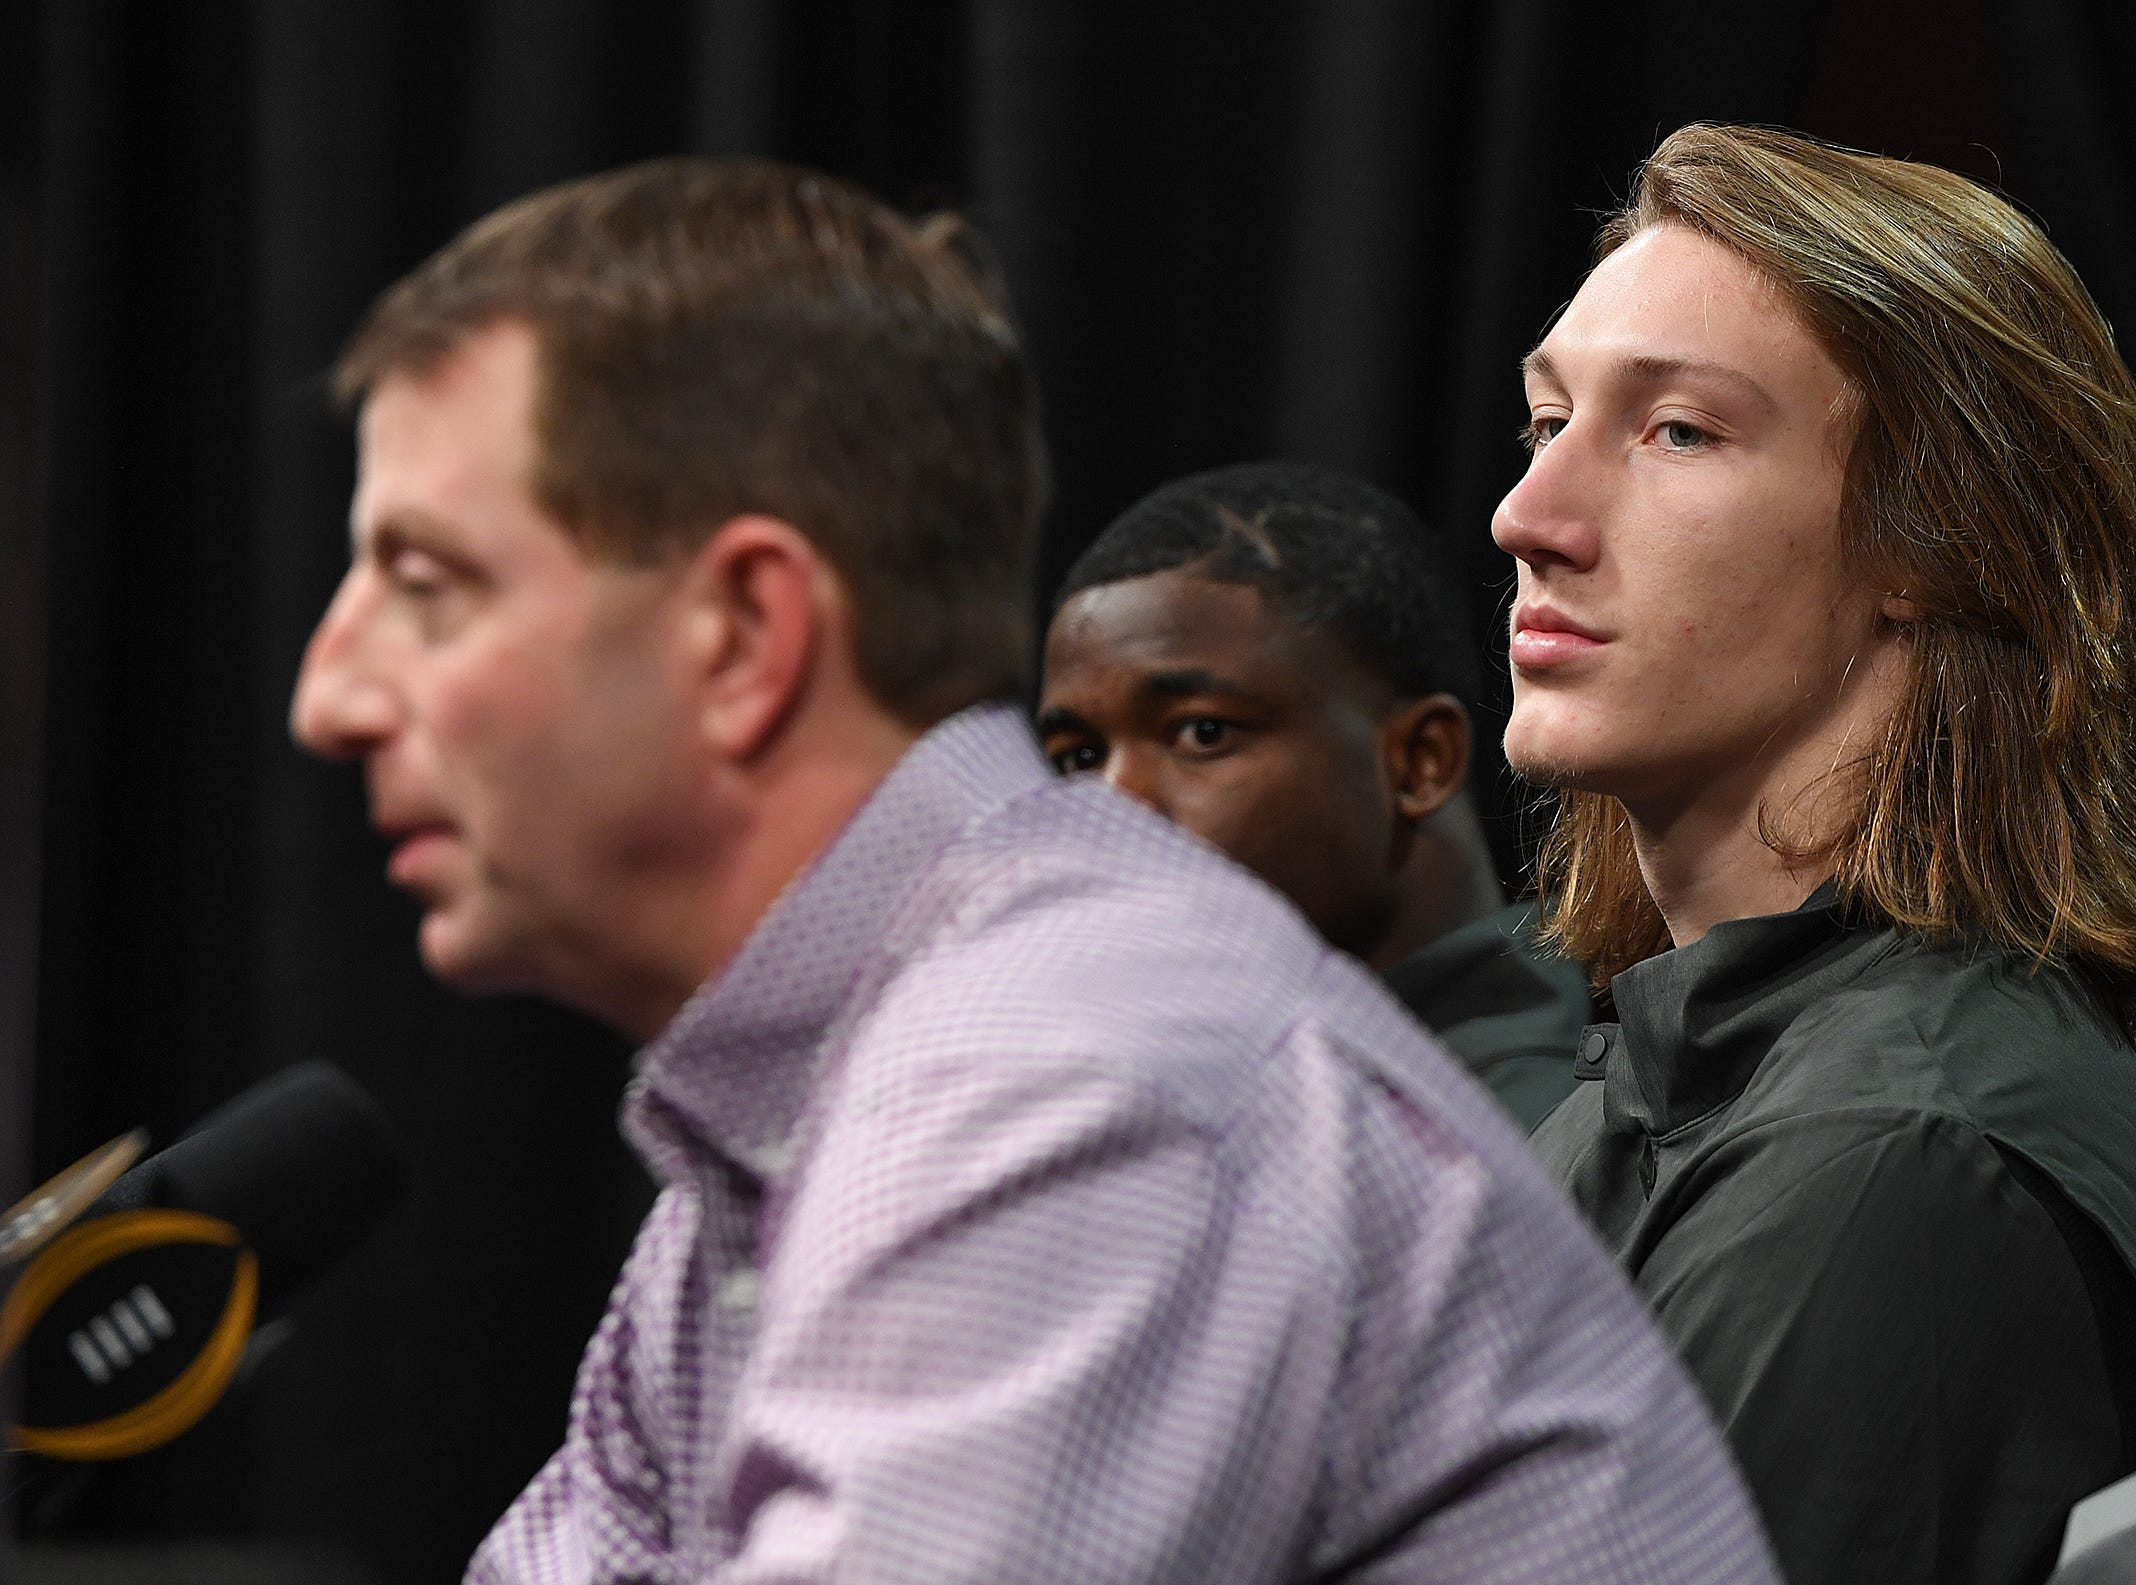 Clemson head coach Dabo Swinney answers questions during the College Football National Championship press conference in San Jose, CA Tuesday, January 8, 2019. With Swinney are defensive MVP cornerback Trayvon Mullen, left, and offensive MVP quarterback Trevor Lawrence.